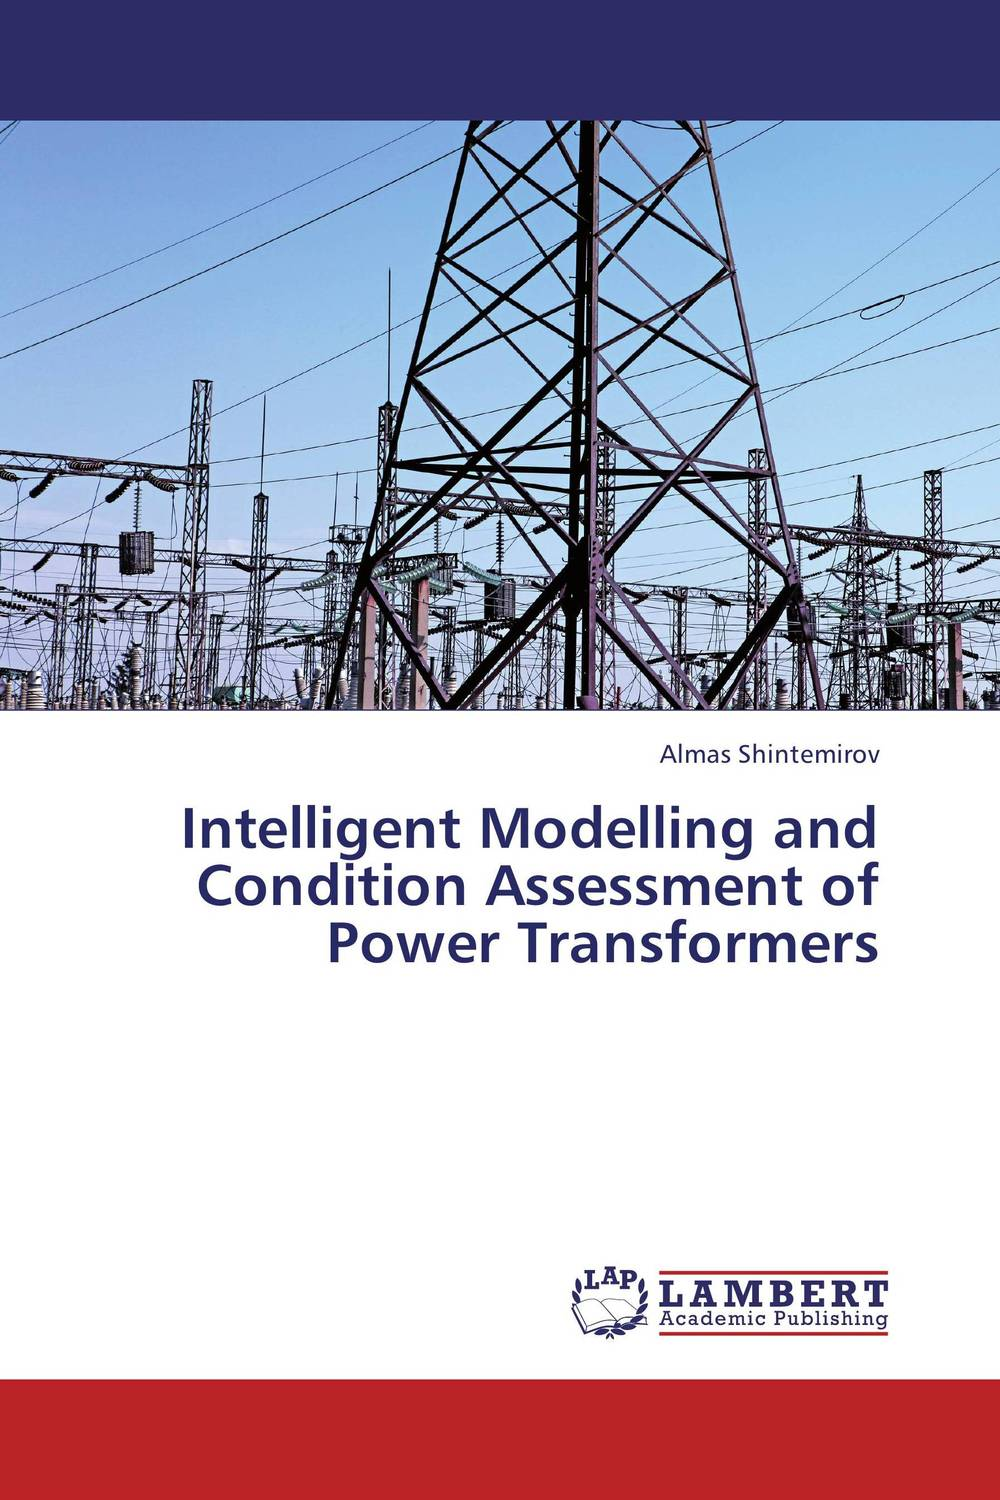 Intelligent Modelling and Condition Assessment of Power Transformers ноутбук hp pavilion power 15 cb006ur 15 6 1920x1080 intel core i5 7300hq 1za80ea